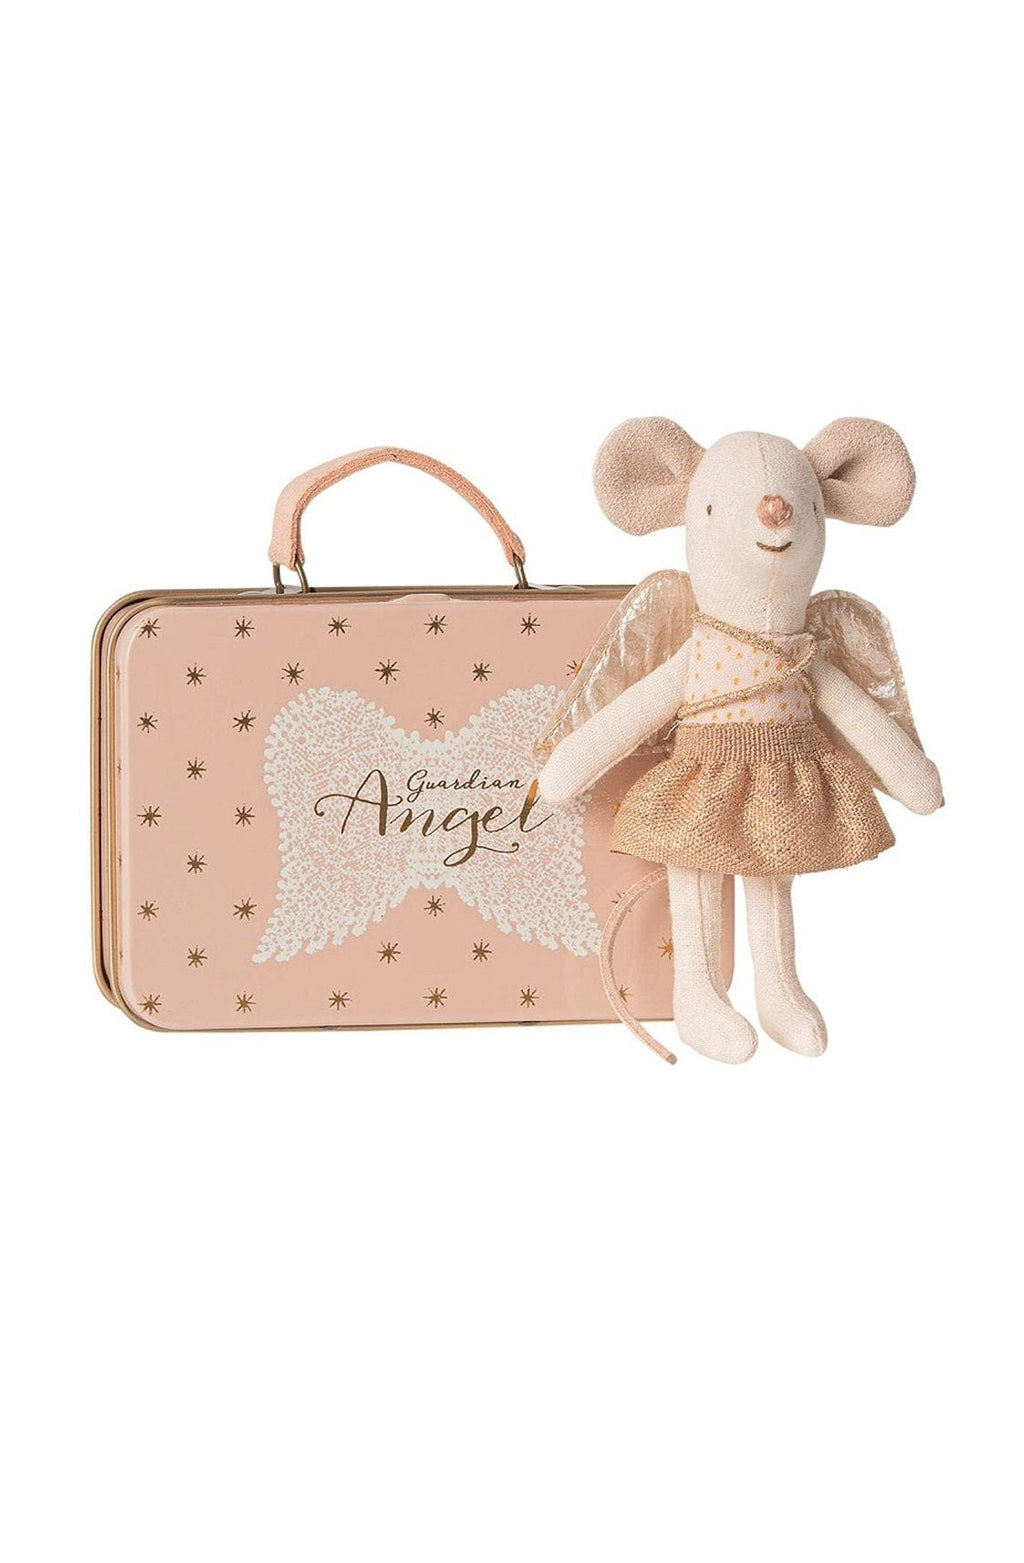 Maileg Guardian Angel in Suitcase - Hello Little Birdie